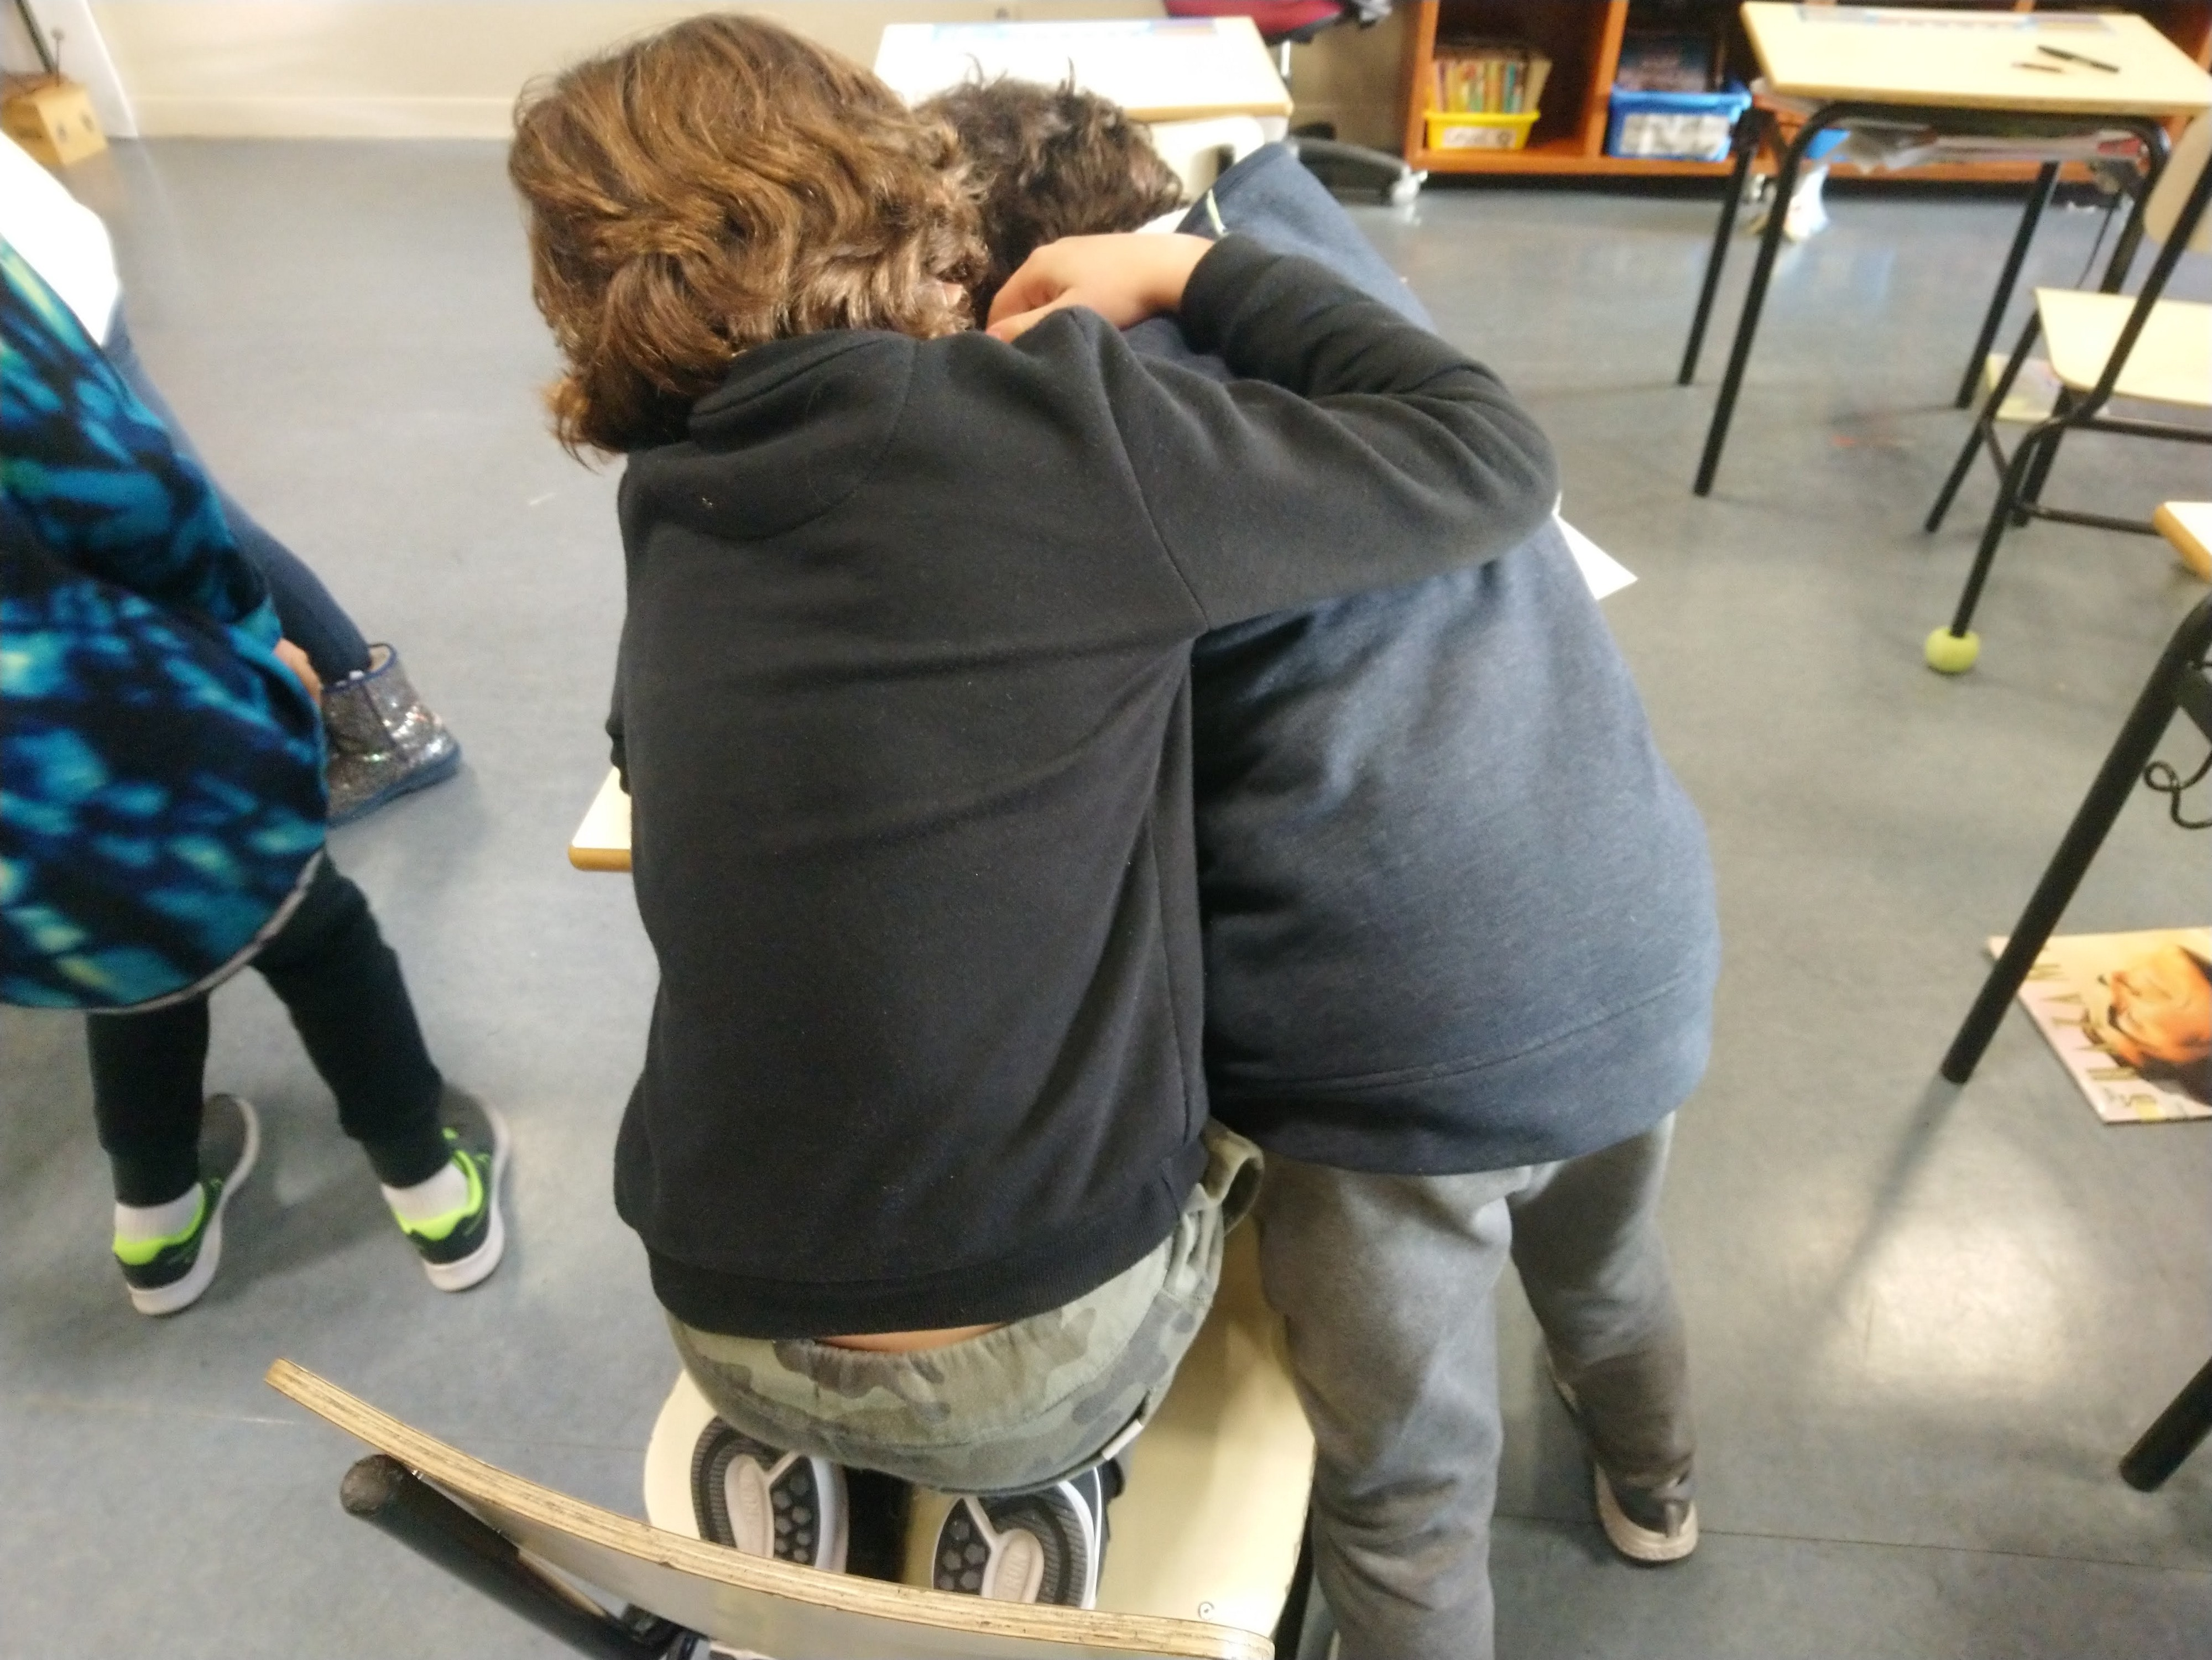 A student puts their arm around another in a classroom